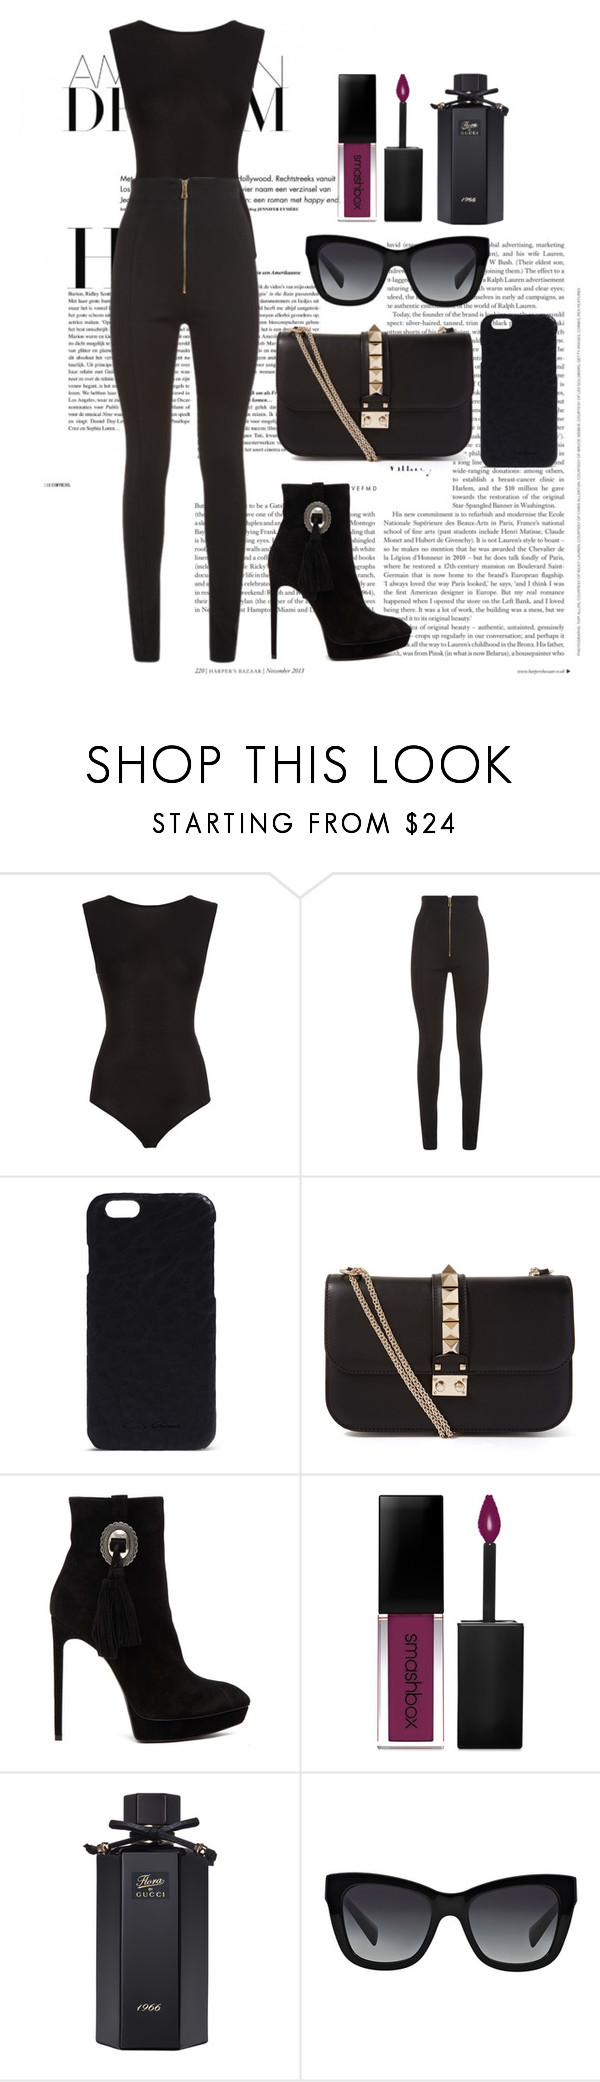 """""""🕳"""" by kiper ❤ liked on Polyvore featuring Maje, Balmain, Rick Owens, Valentino, Yves Saint Laurent, Smashbox, Gucci, Dolce&Gabbana and vintage"""